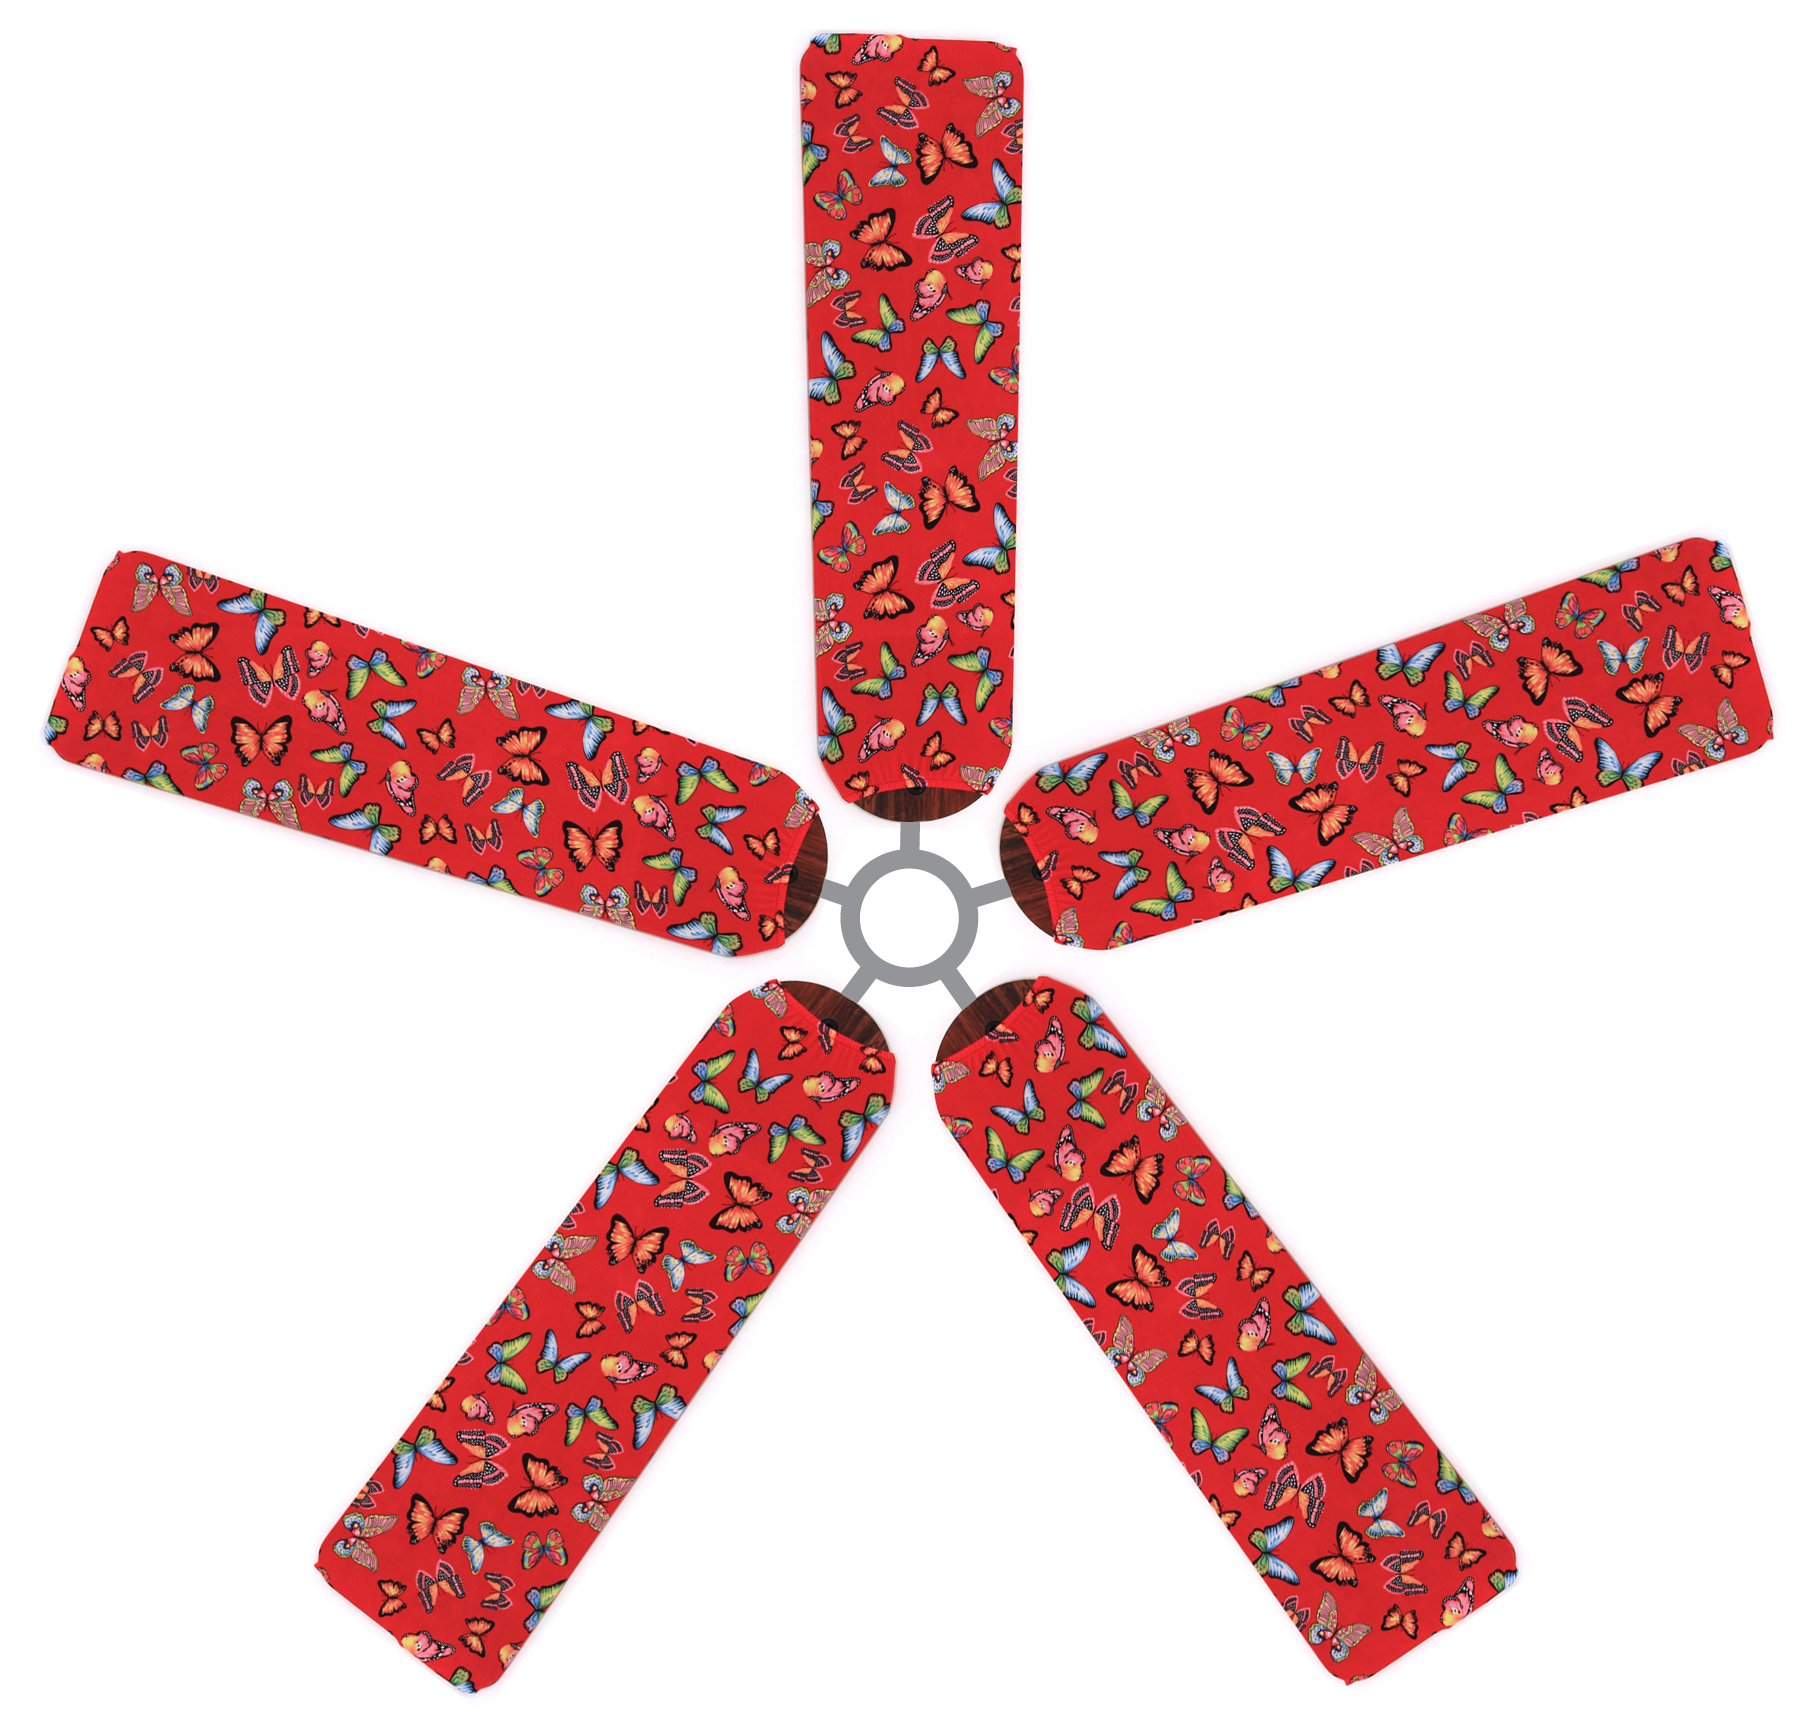 Fan Blade Designs Butterflies Ceiling Fan Blade Covers